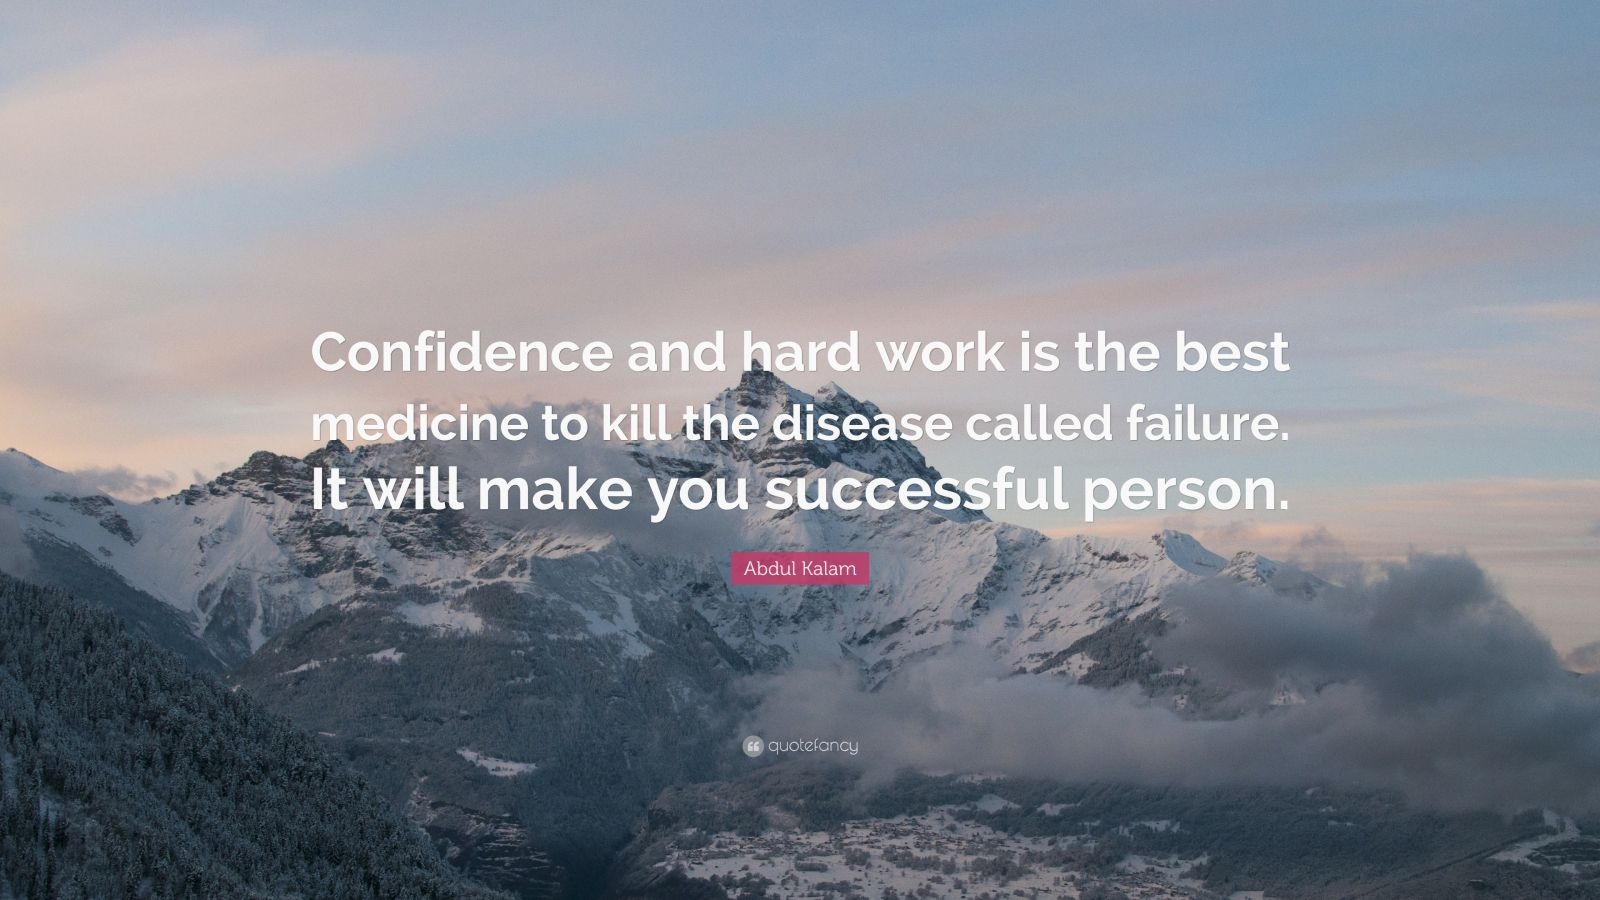 """Abdul Kalam Quote: """"Confidence and hard work is the best medicine to kill the disease called failure. It will make you successful person."""""""